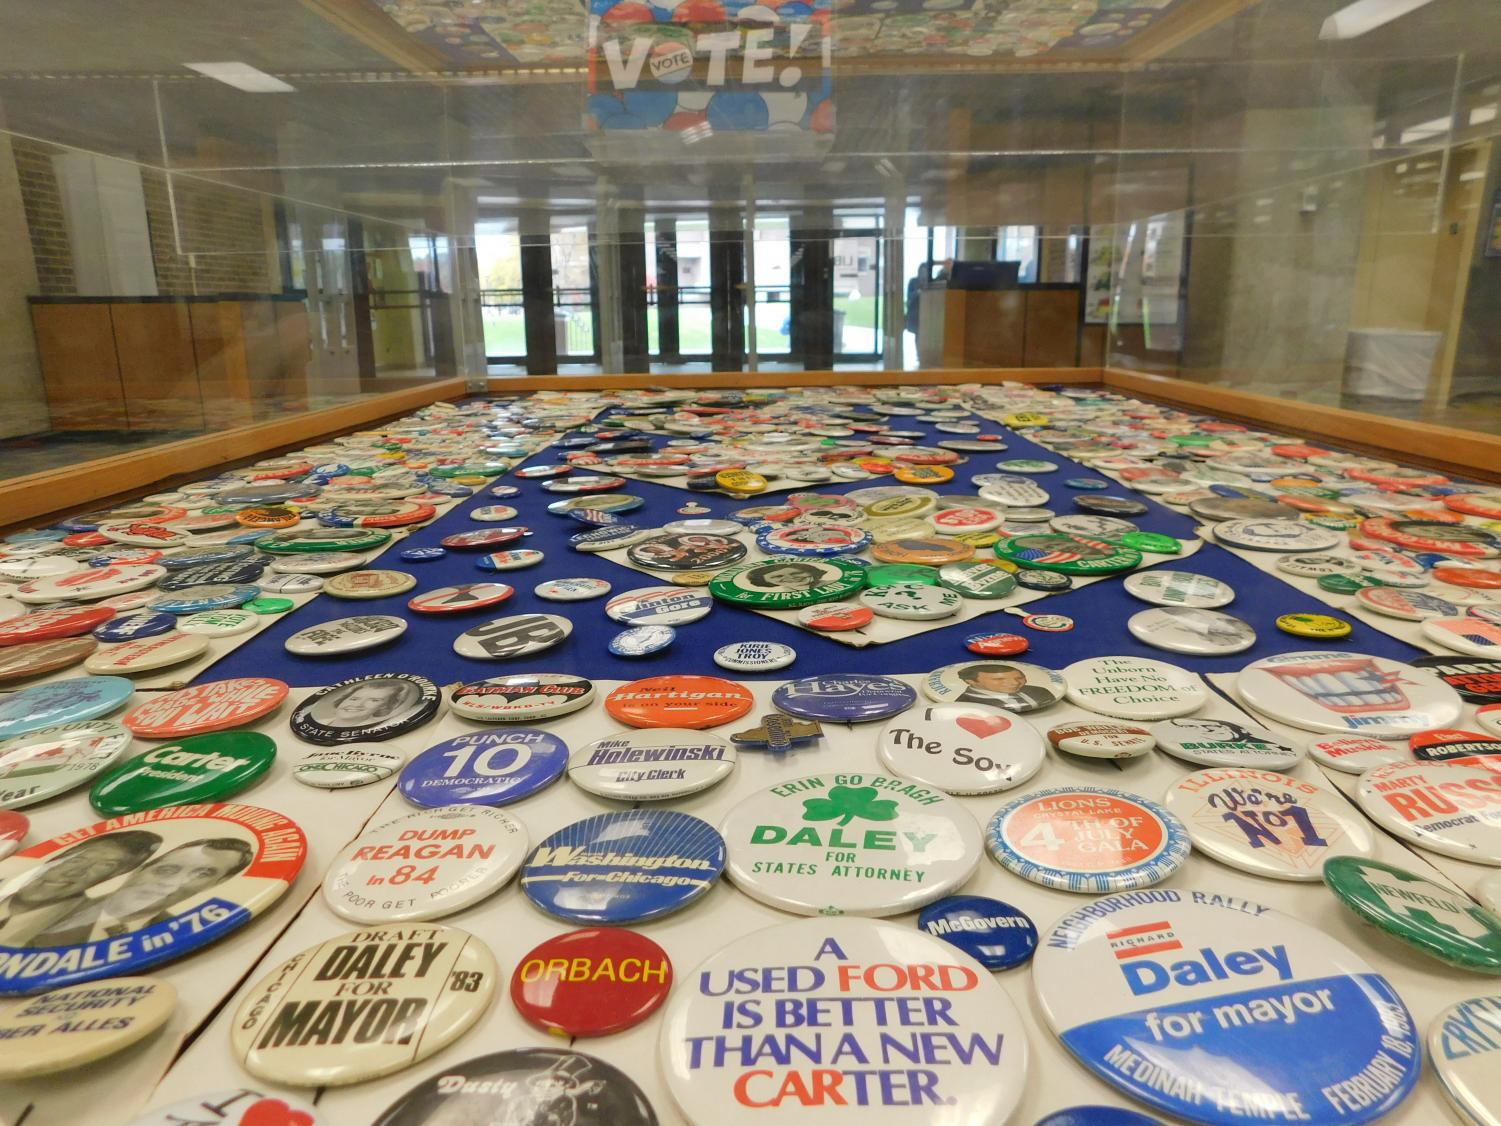 Archival political pins in the Ronald Williams Library. Display set up by Digital Scholarship Librarian and Assistant Professor Alyssa Vincent, Social Sciences Librarian and Assistant Professor Ed Remus and Administrative Assistant Bonnie Pfeiffelman.